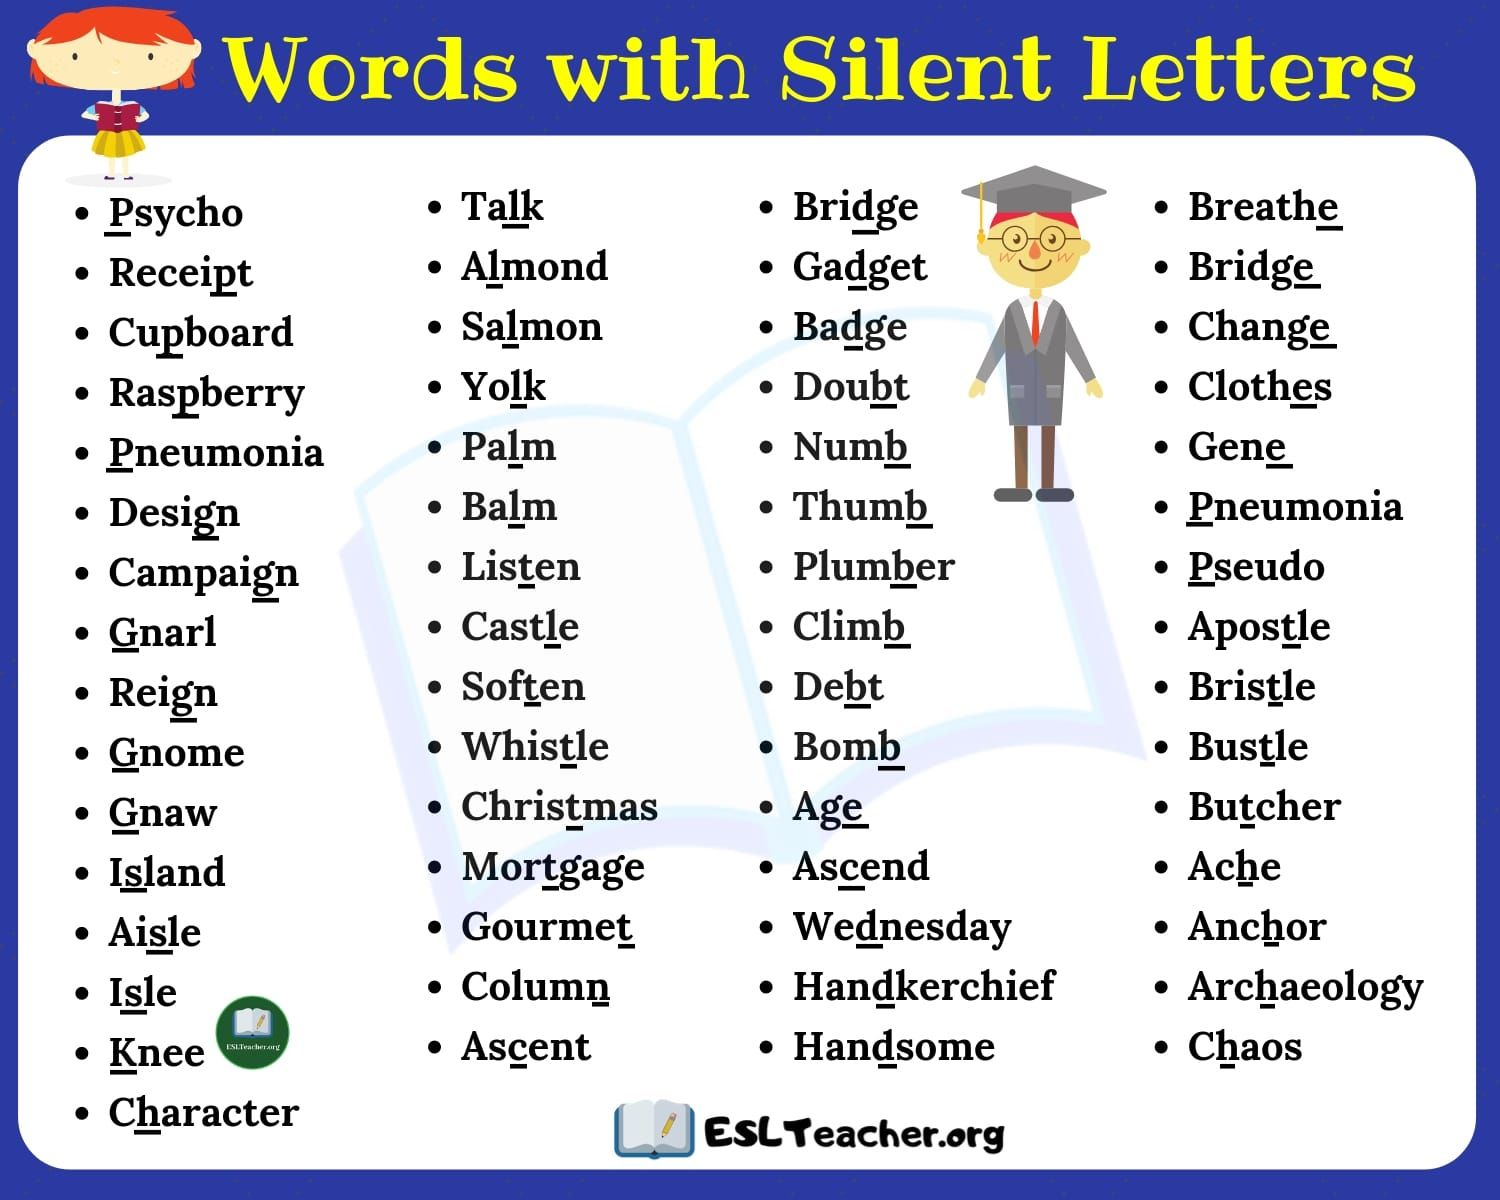 Silent Letters 65 Popular English Words With Silent